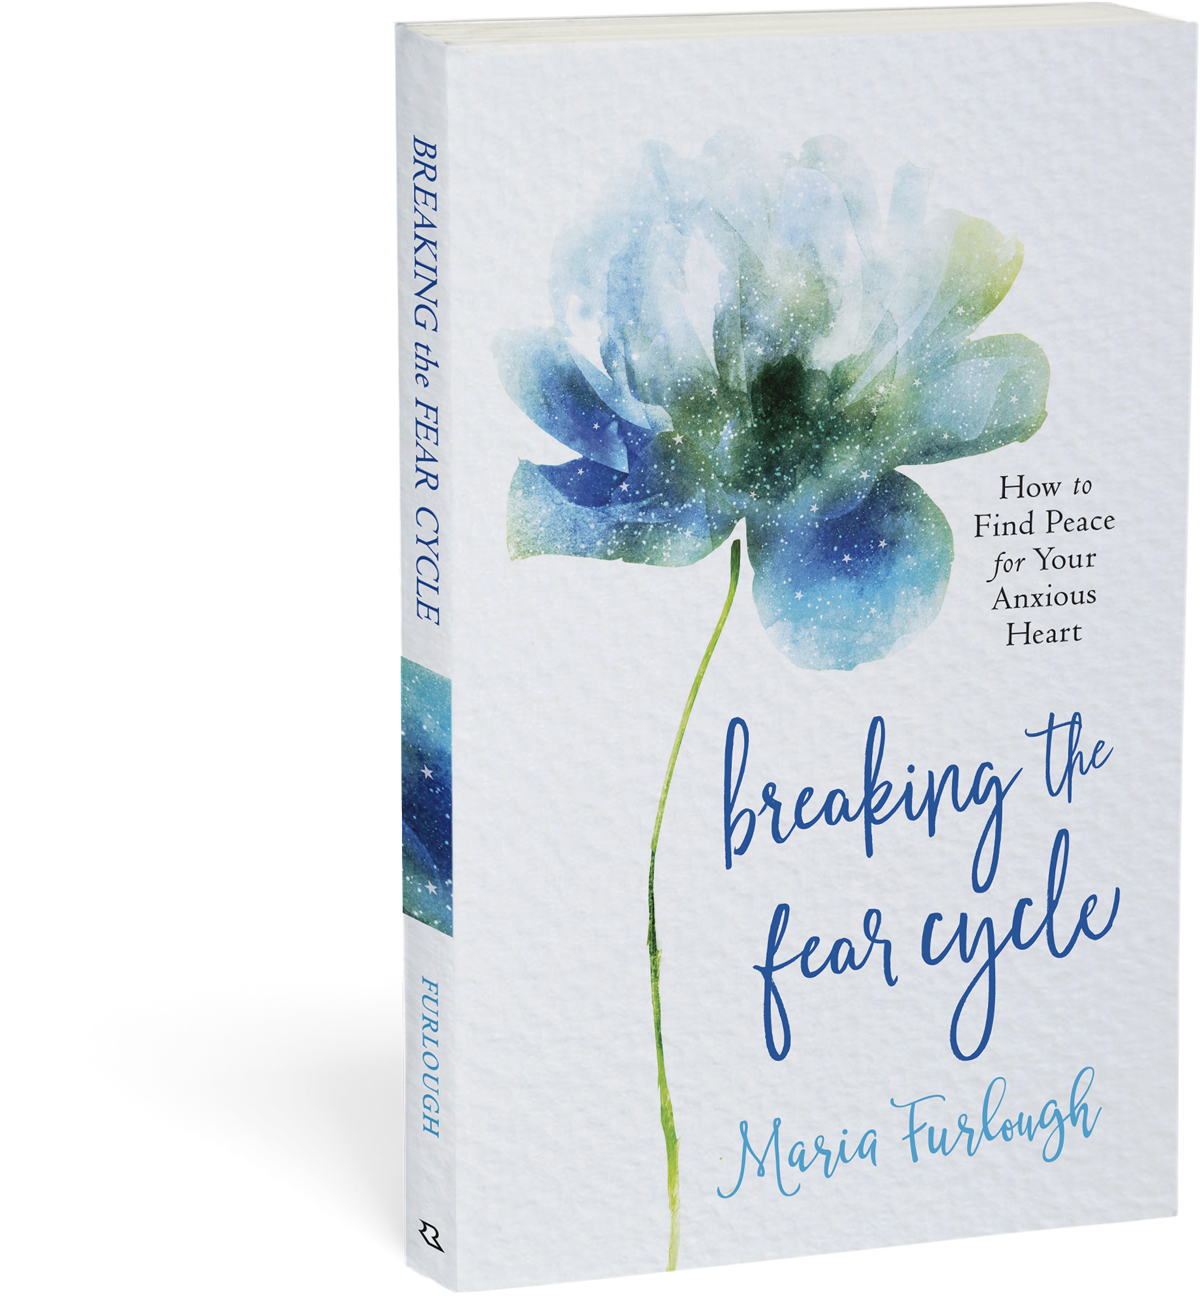 BreakingTheFearCycle—MariaFurlough